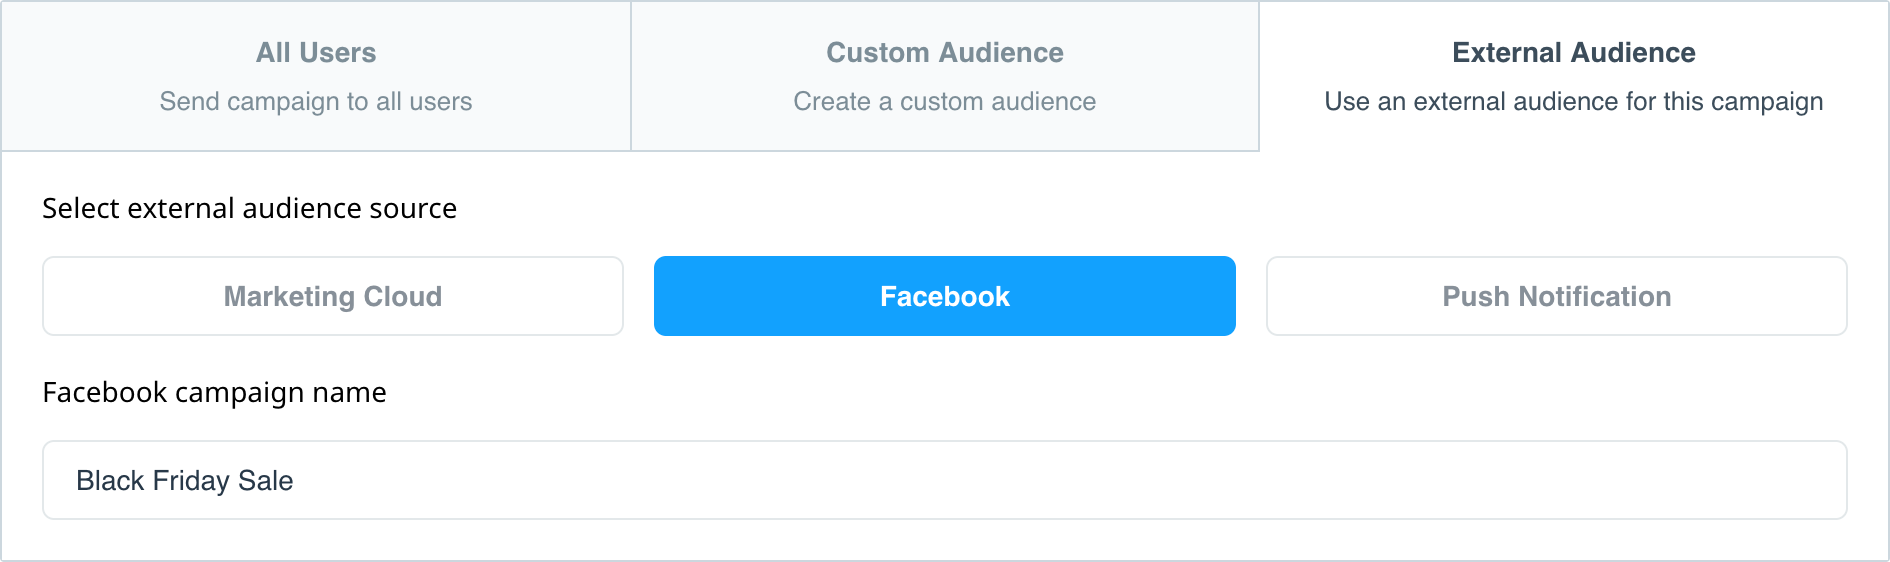 External audience Facebook campaign